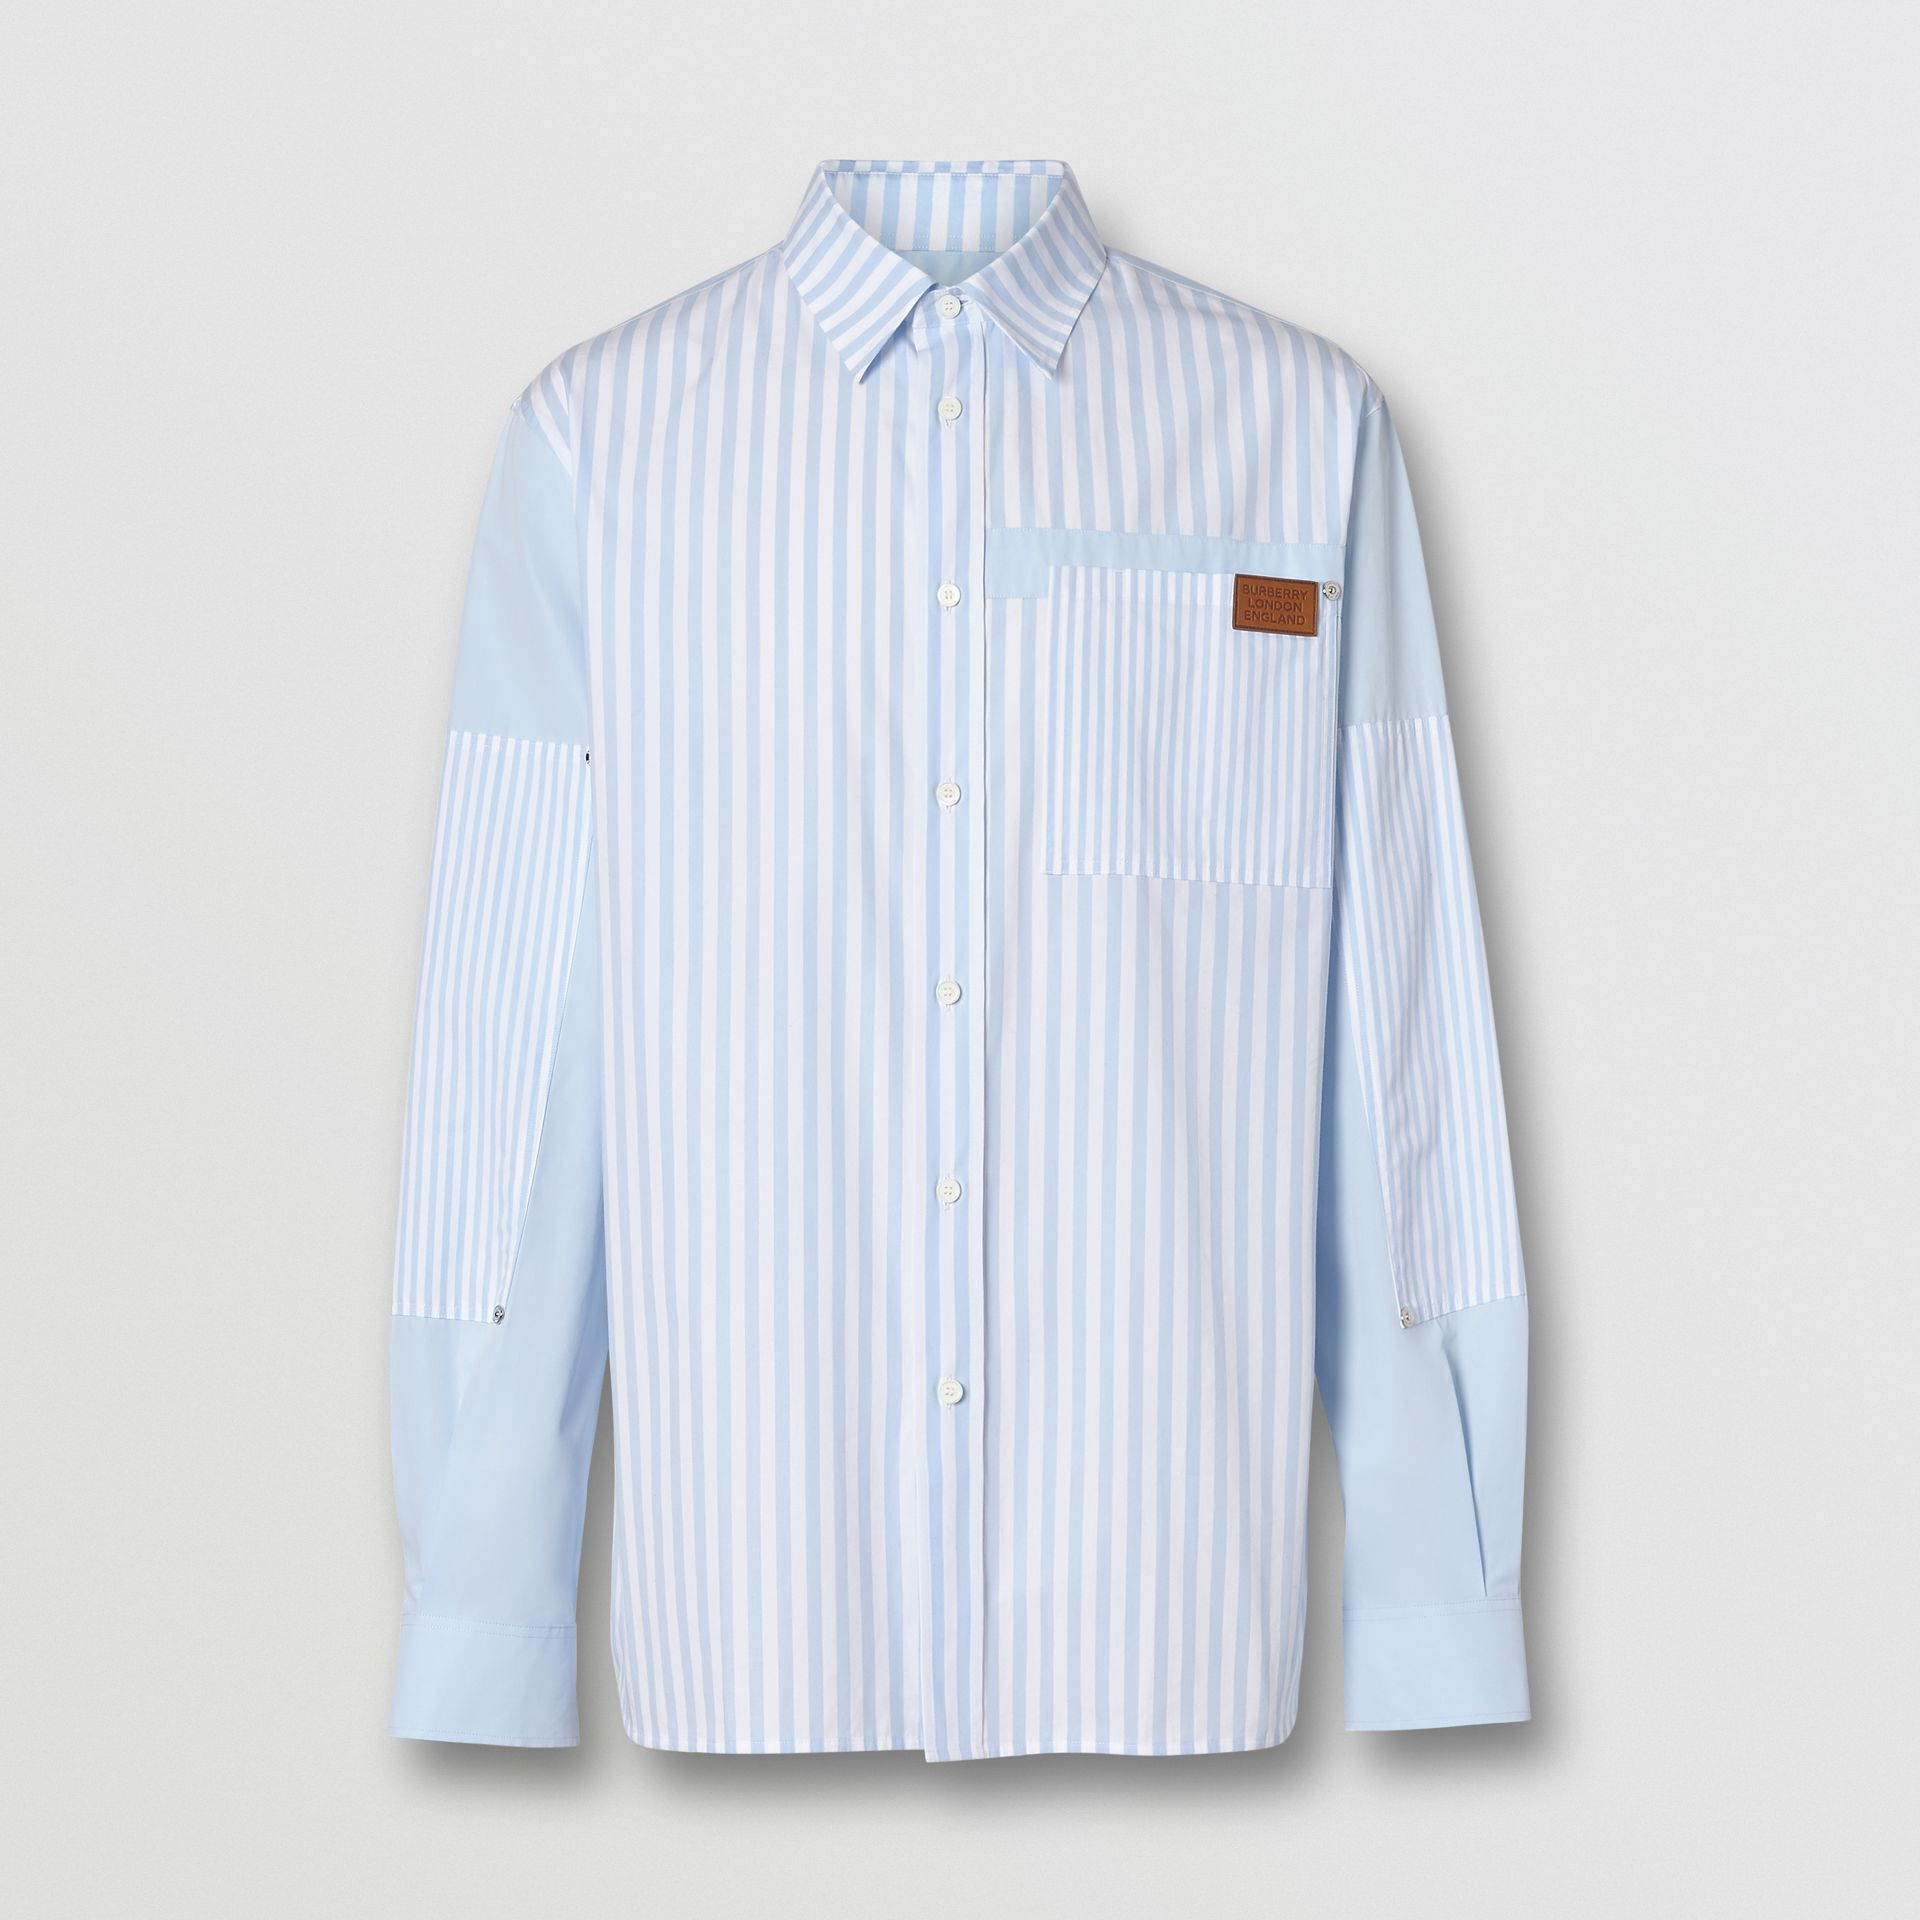 Logo Detail Patchwork Striped Cotton Shirt in Pale Blue Stripe - Men | Burberry United Kingdom - gallery image 3